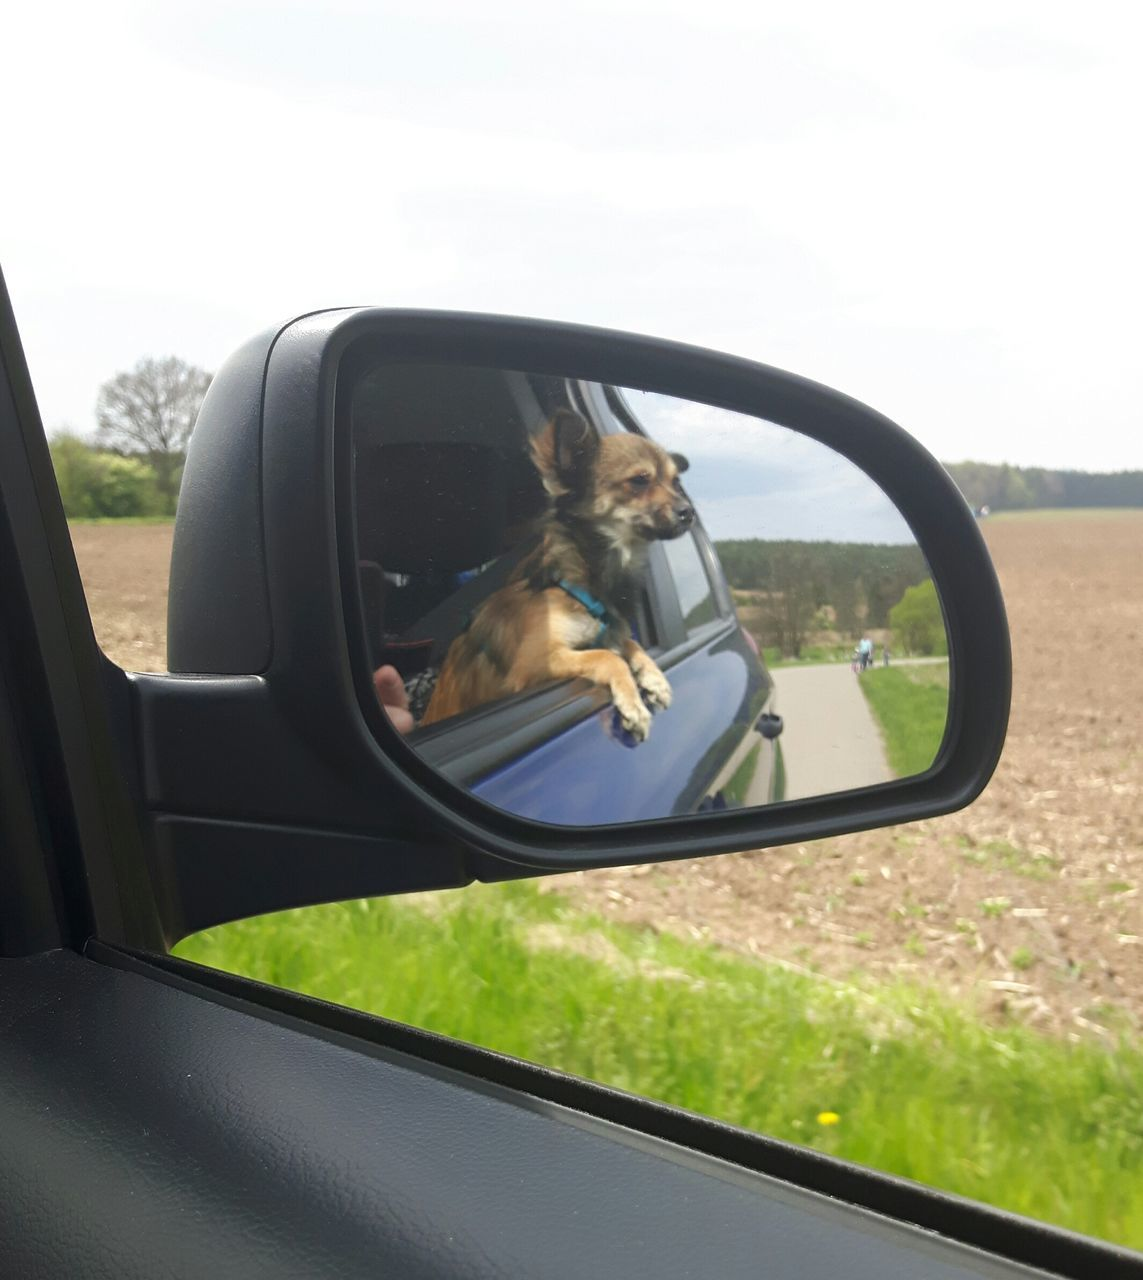 side-view mirror, car, transportation, mode of transport, land vehicle, one animal, reflection, vehicle mirror, mirror, photographing, animal themes, road trip, day, car interior, nature, one person, dog, real people, photography themes, window, driving, road, sky, pets, camera - photographic equipment, outdoors, grass, mammal